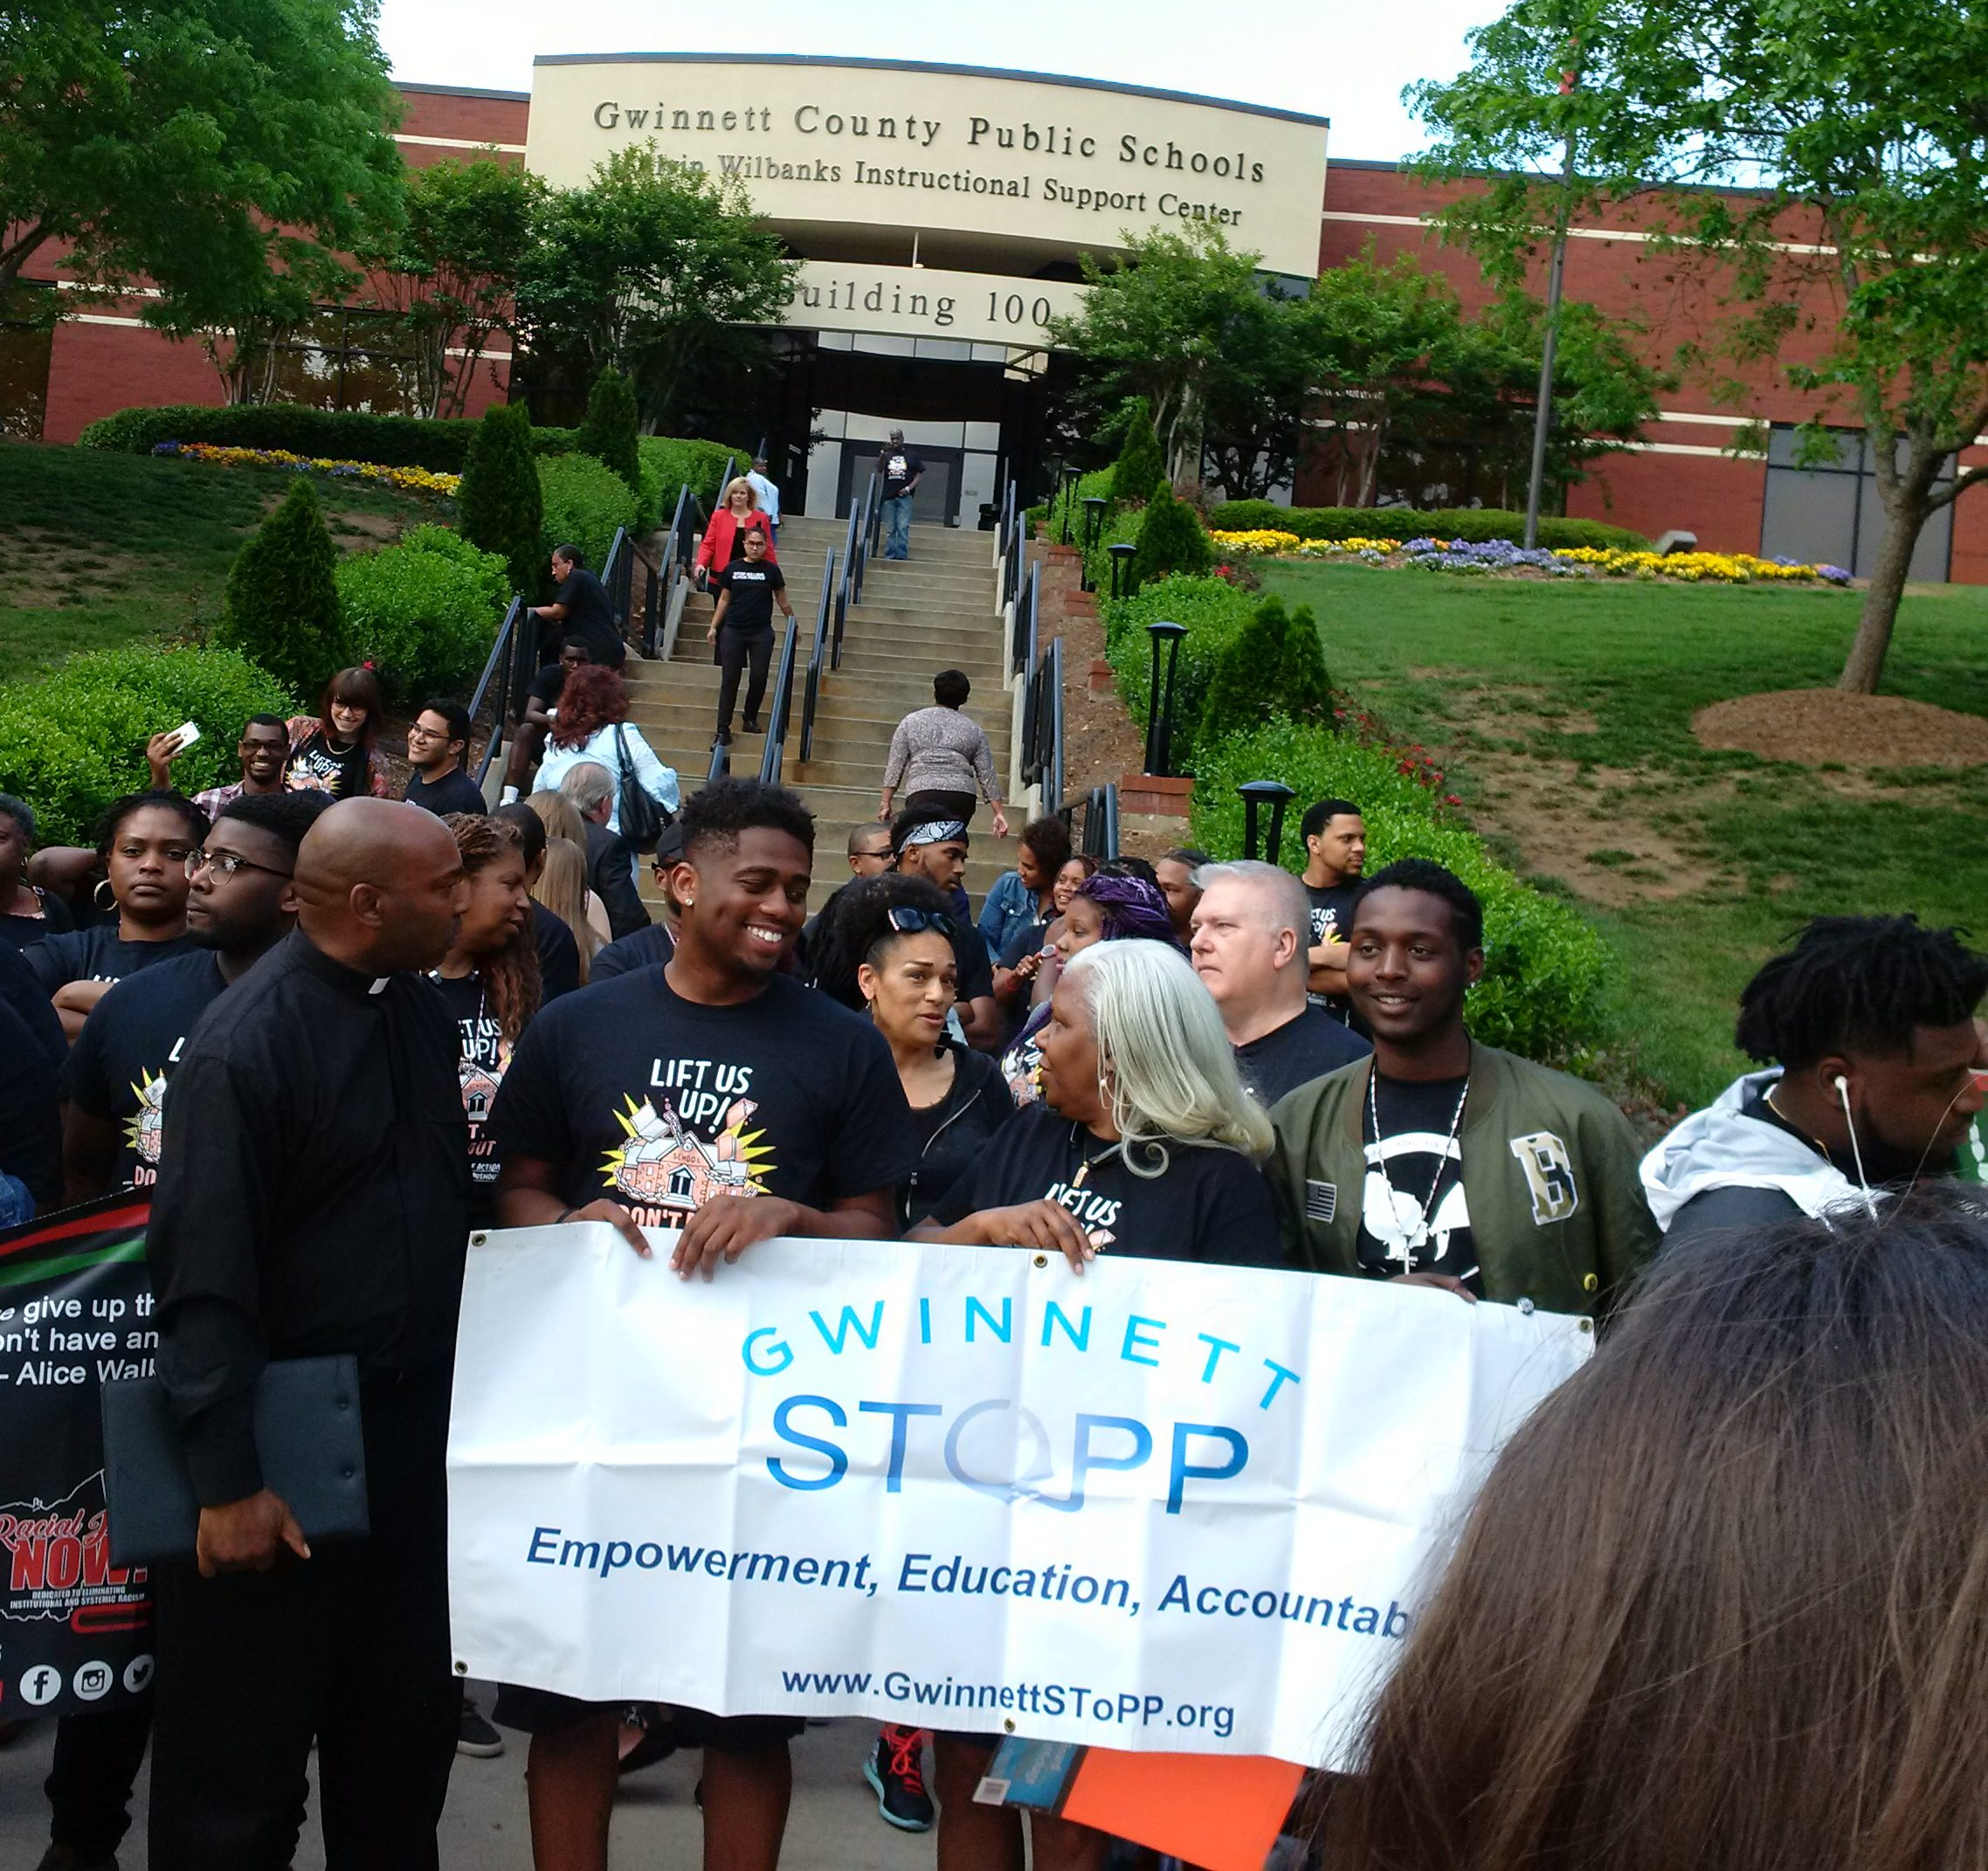 Gwinnett SToPP – Empowerment, Education, Accountability